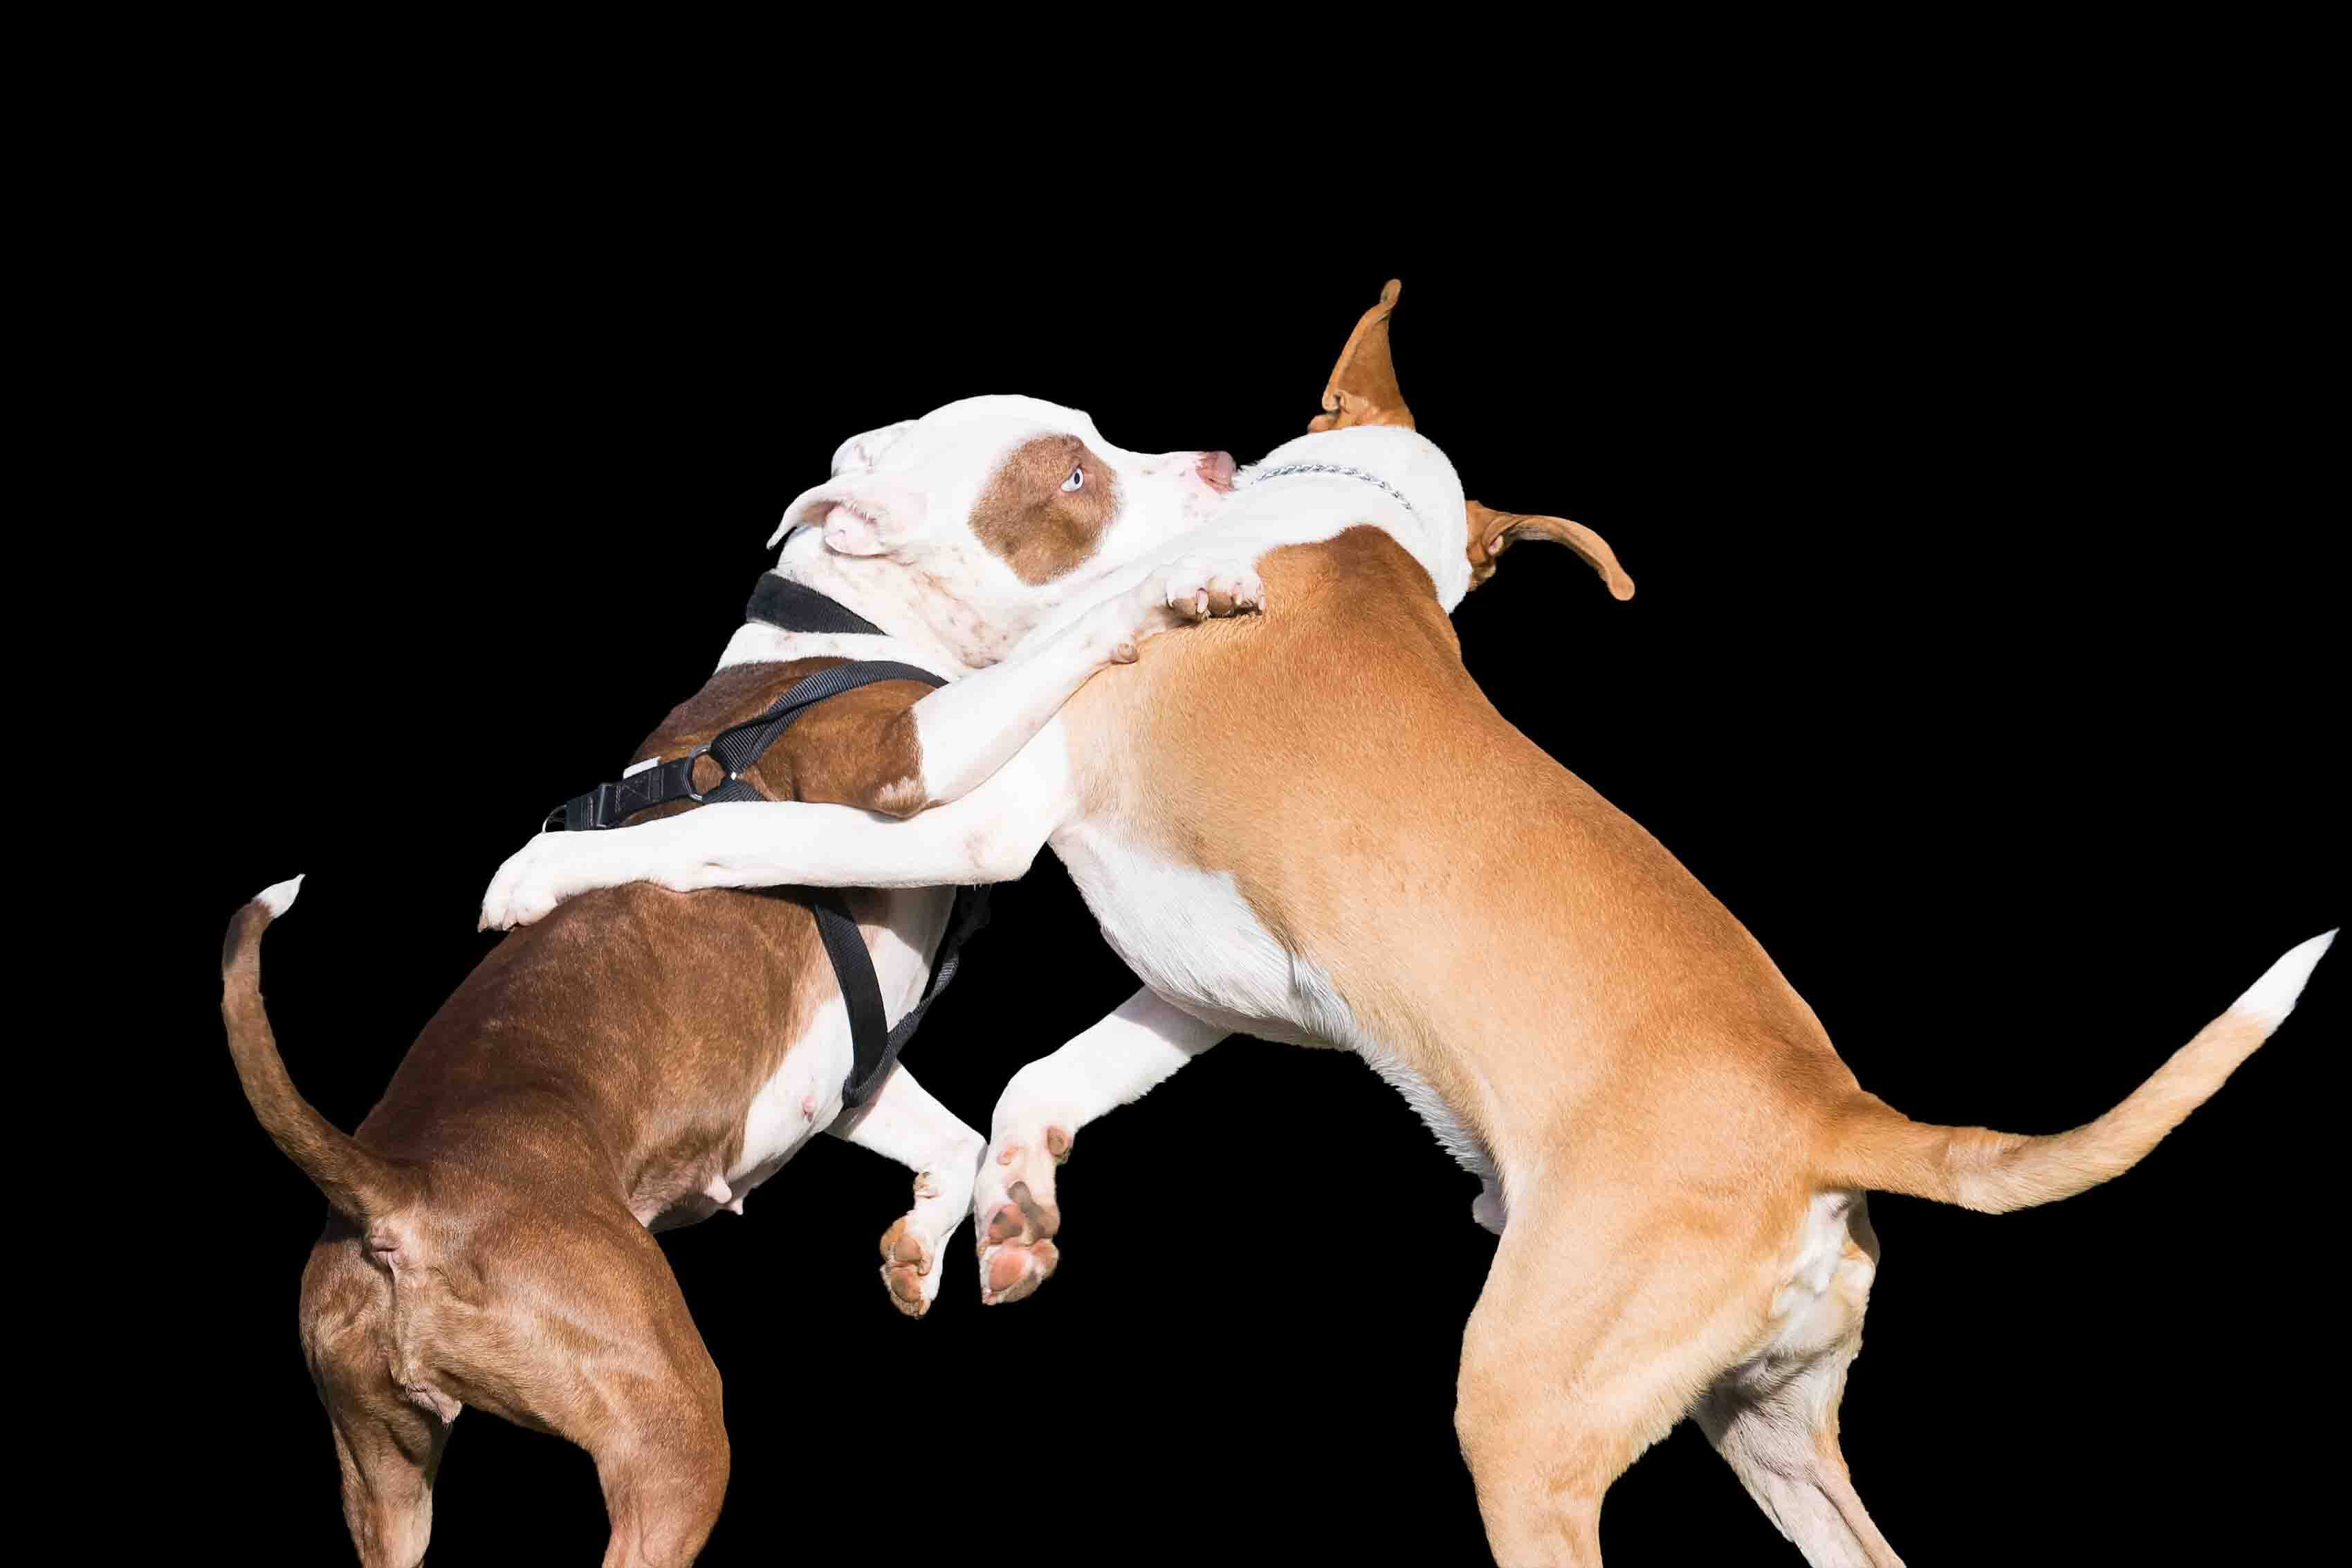 Two Pit Bulls playing rough